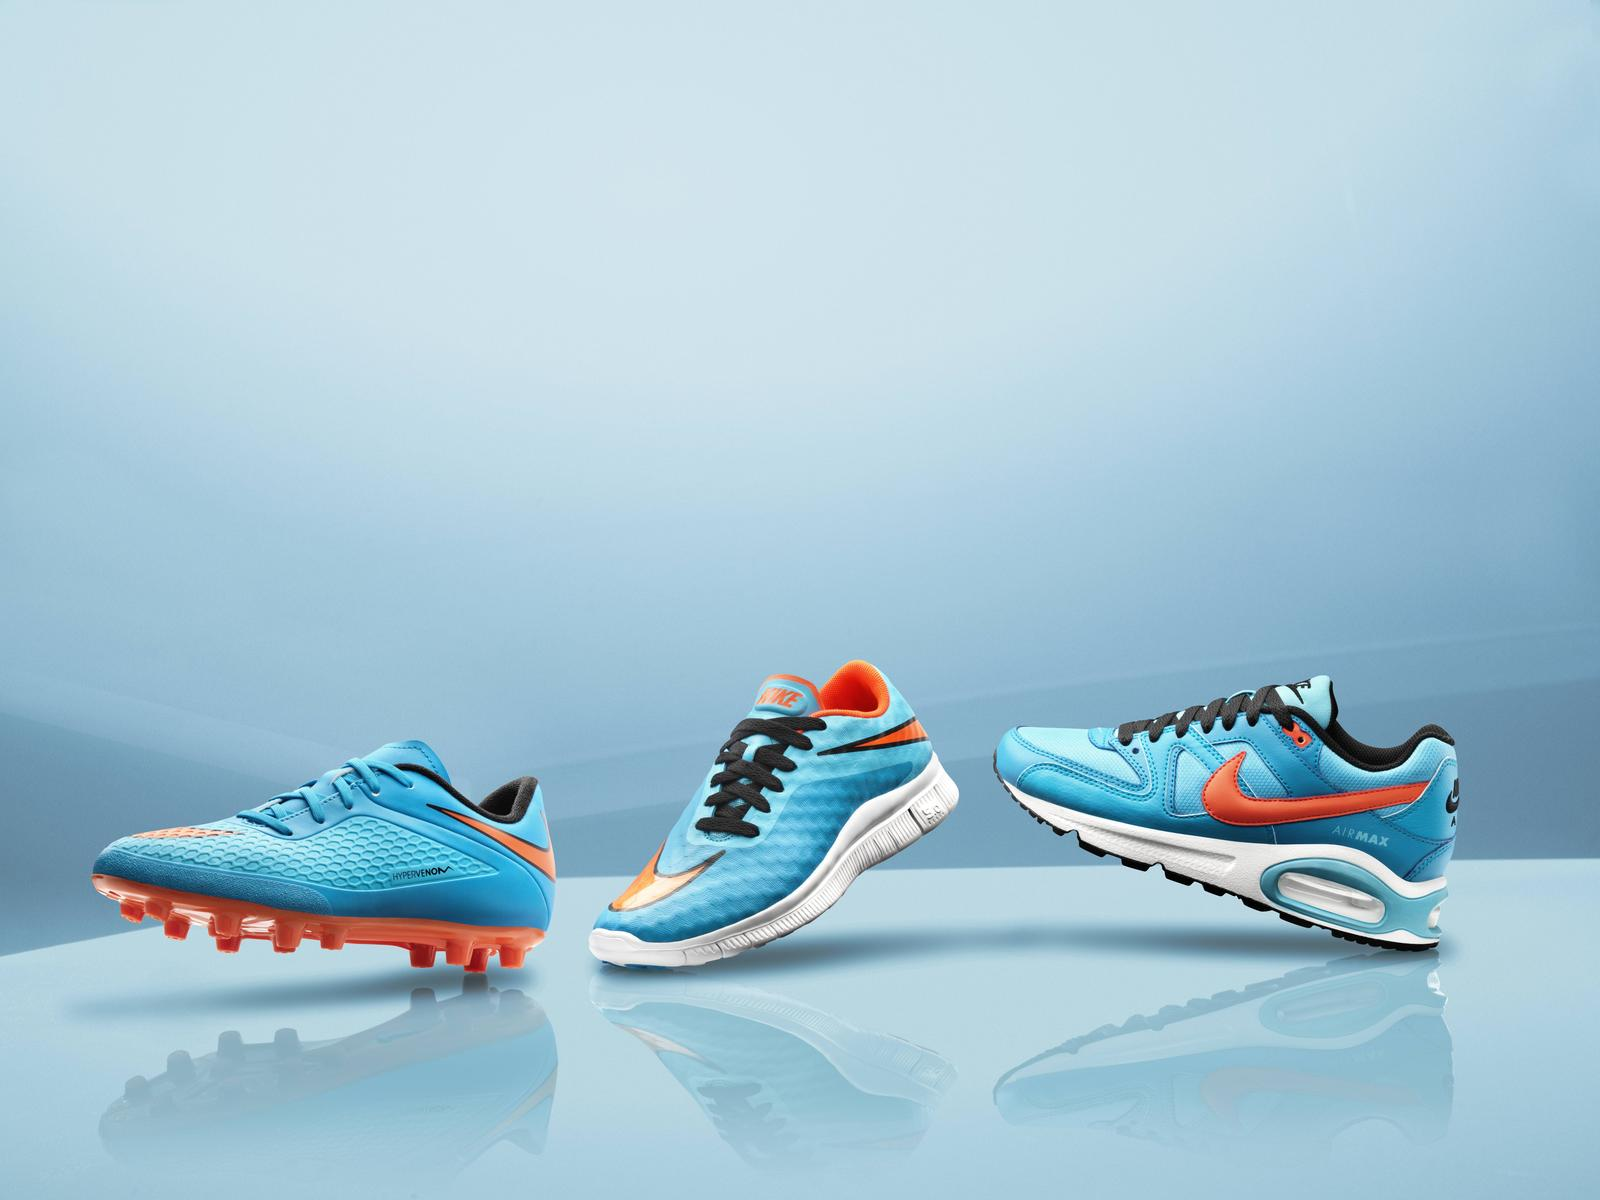 Nike Highlight Hypervenom Pack